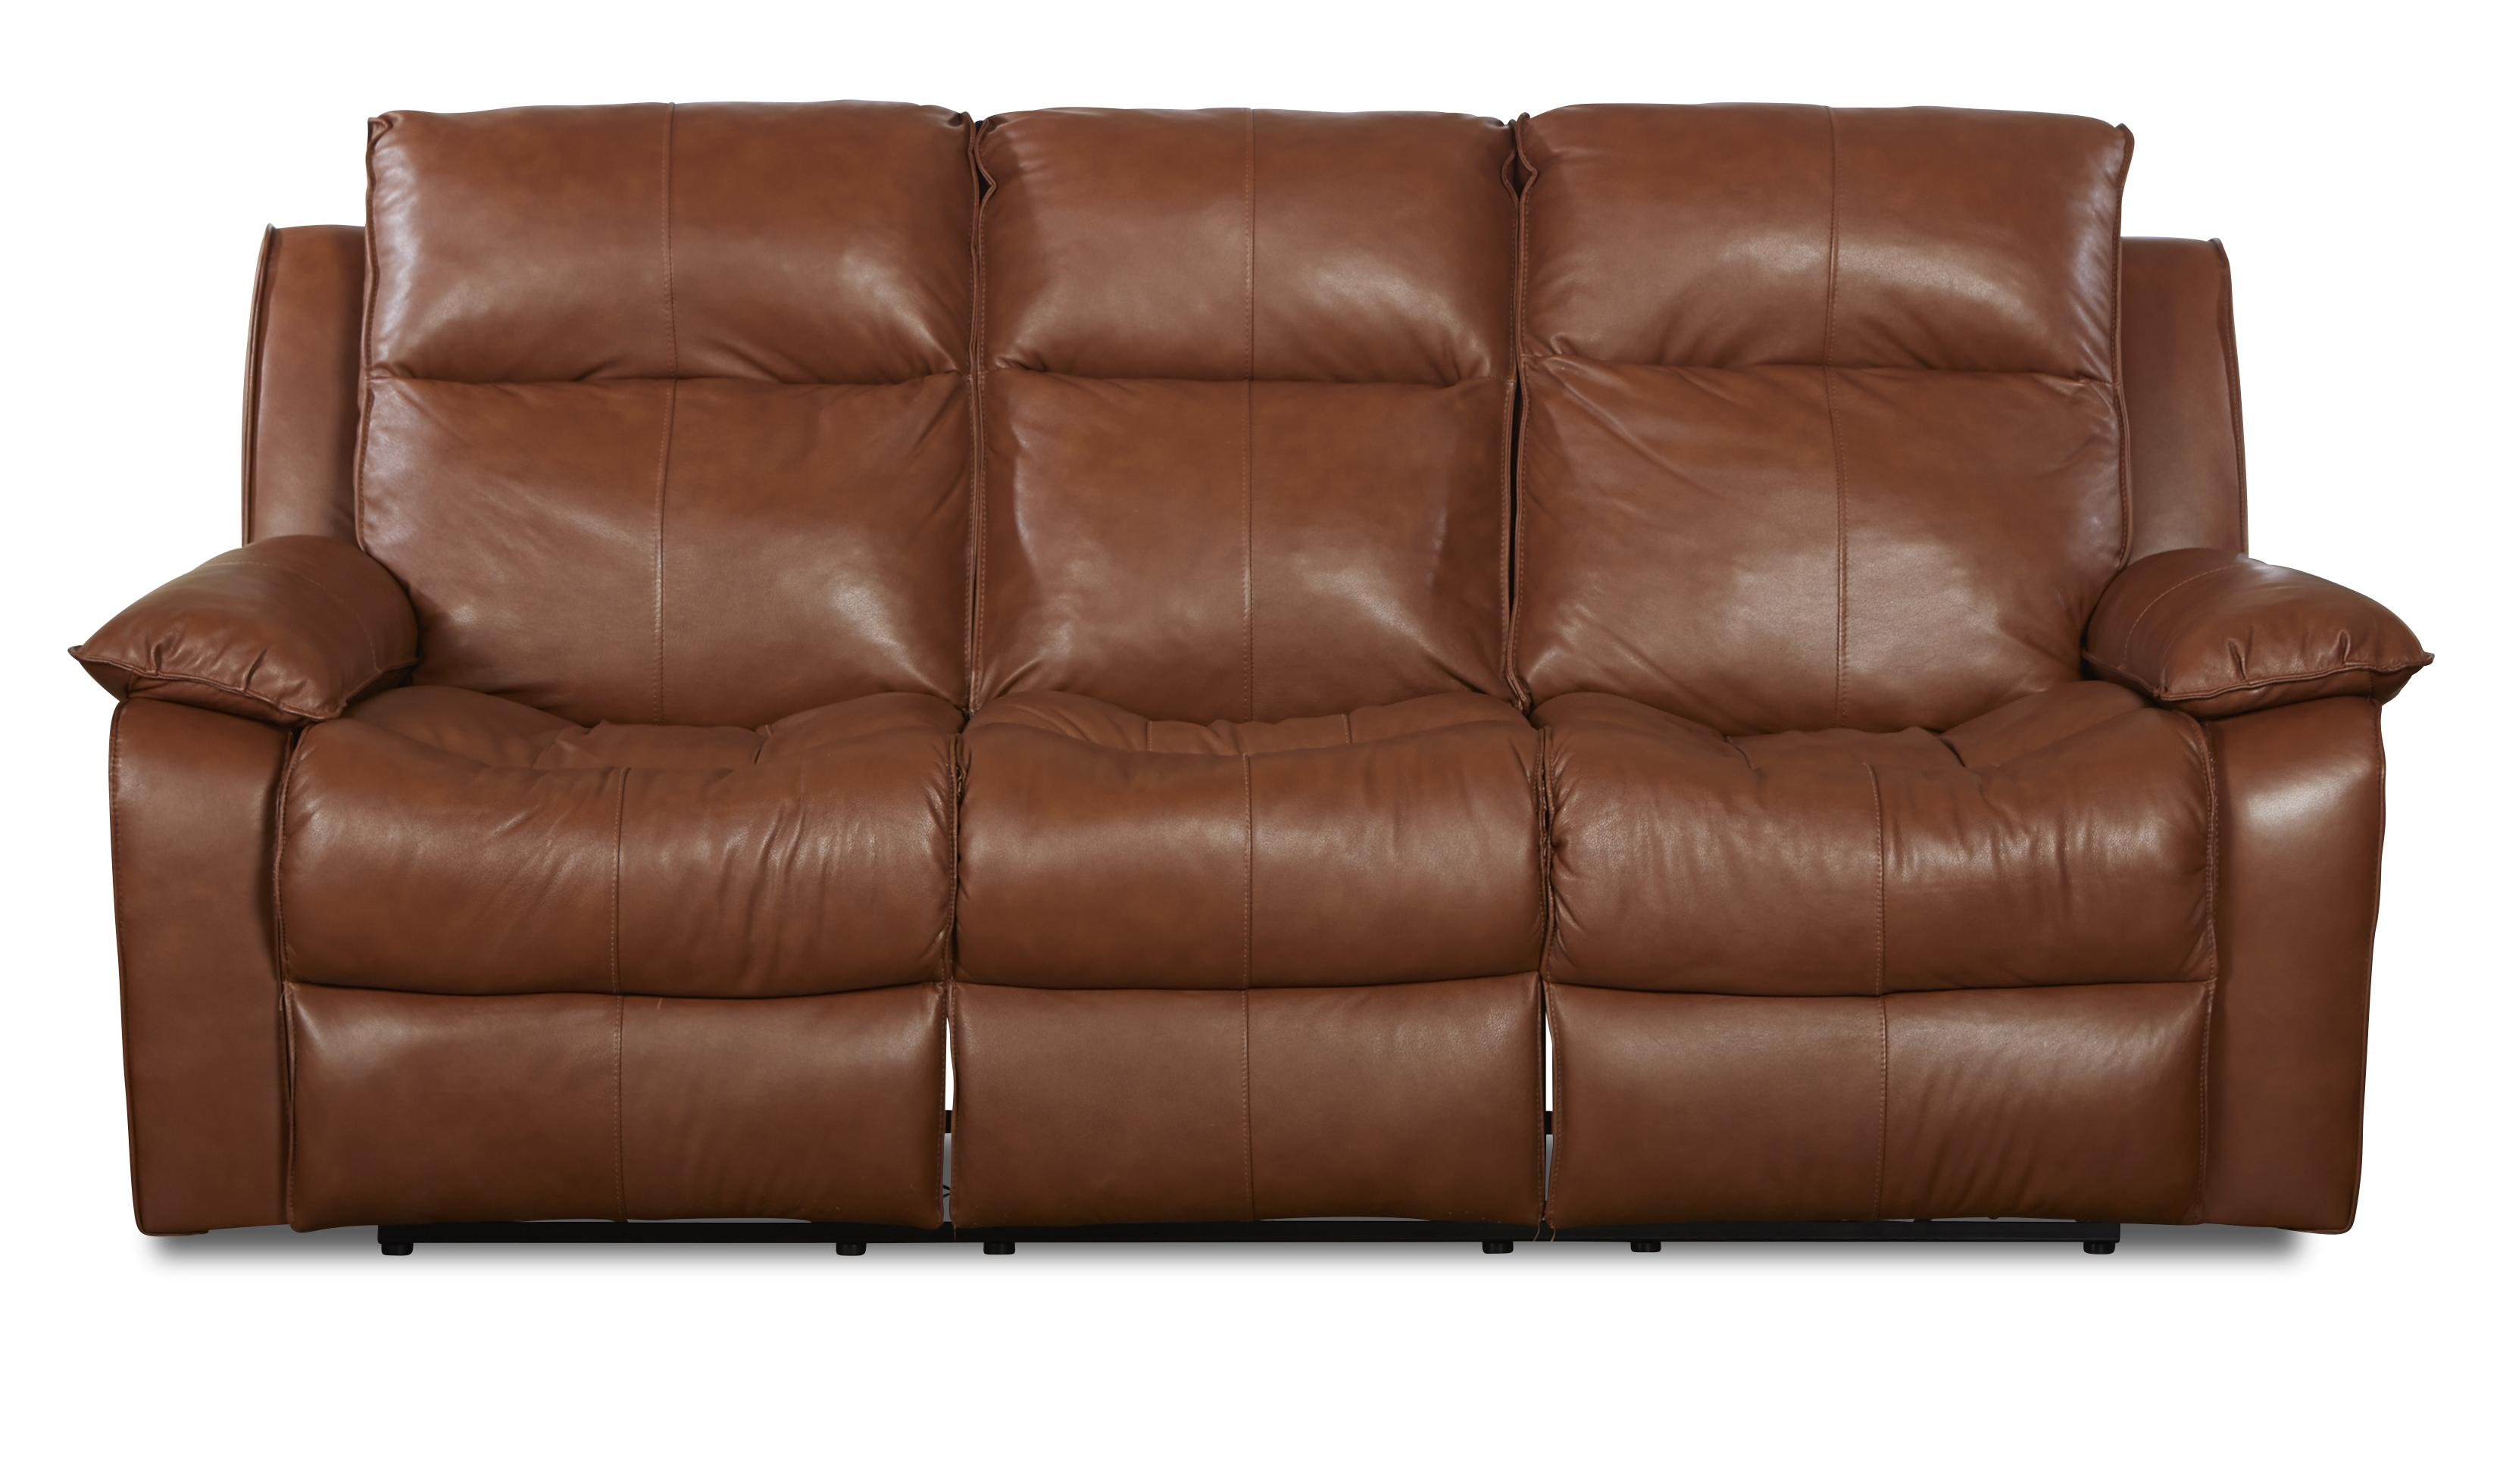 Castaway Casual Reclining Sofa by Klaussner at Northeast Factory Direct